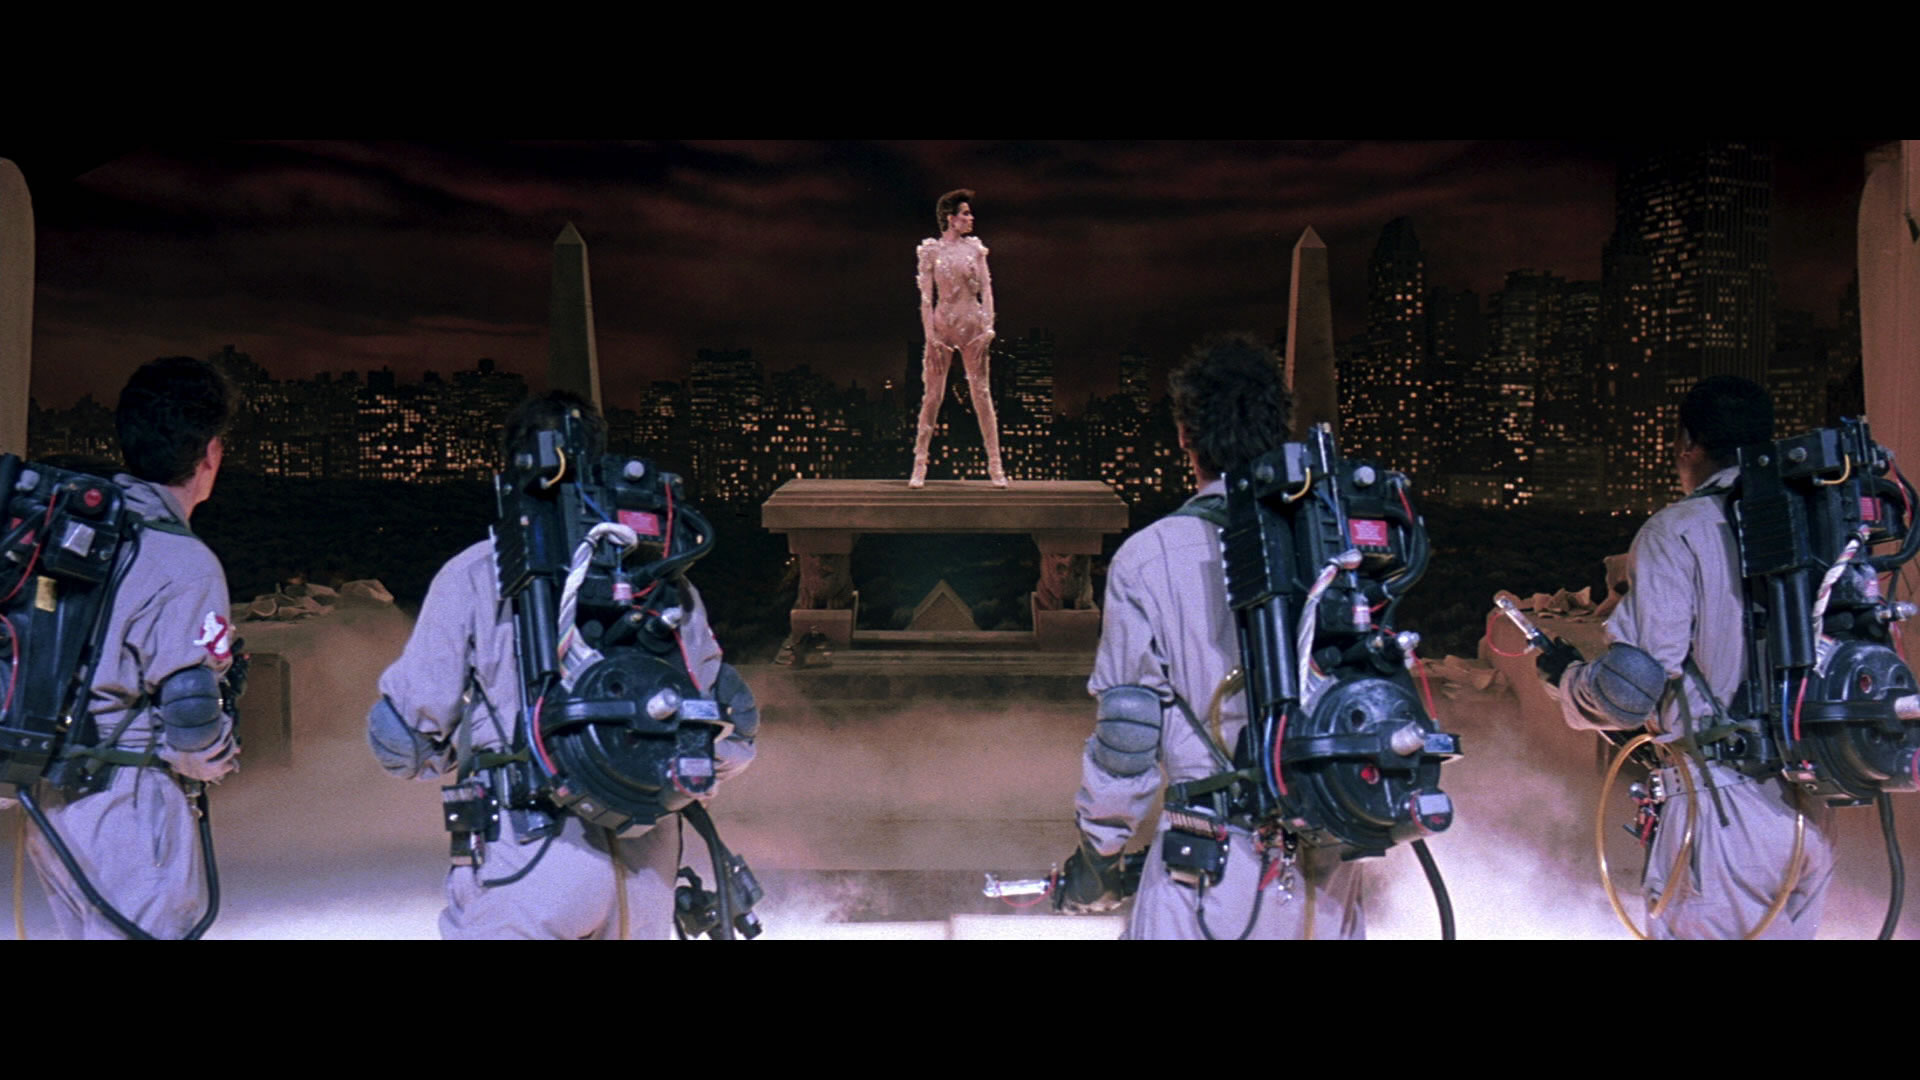 Ghostbusters hd wallpaper background image 1920x1080 - Ghostbusters wallpaper ...